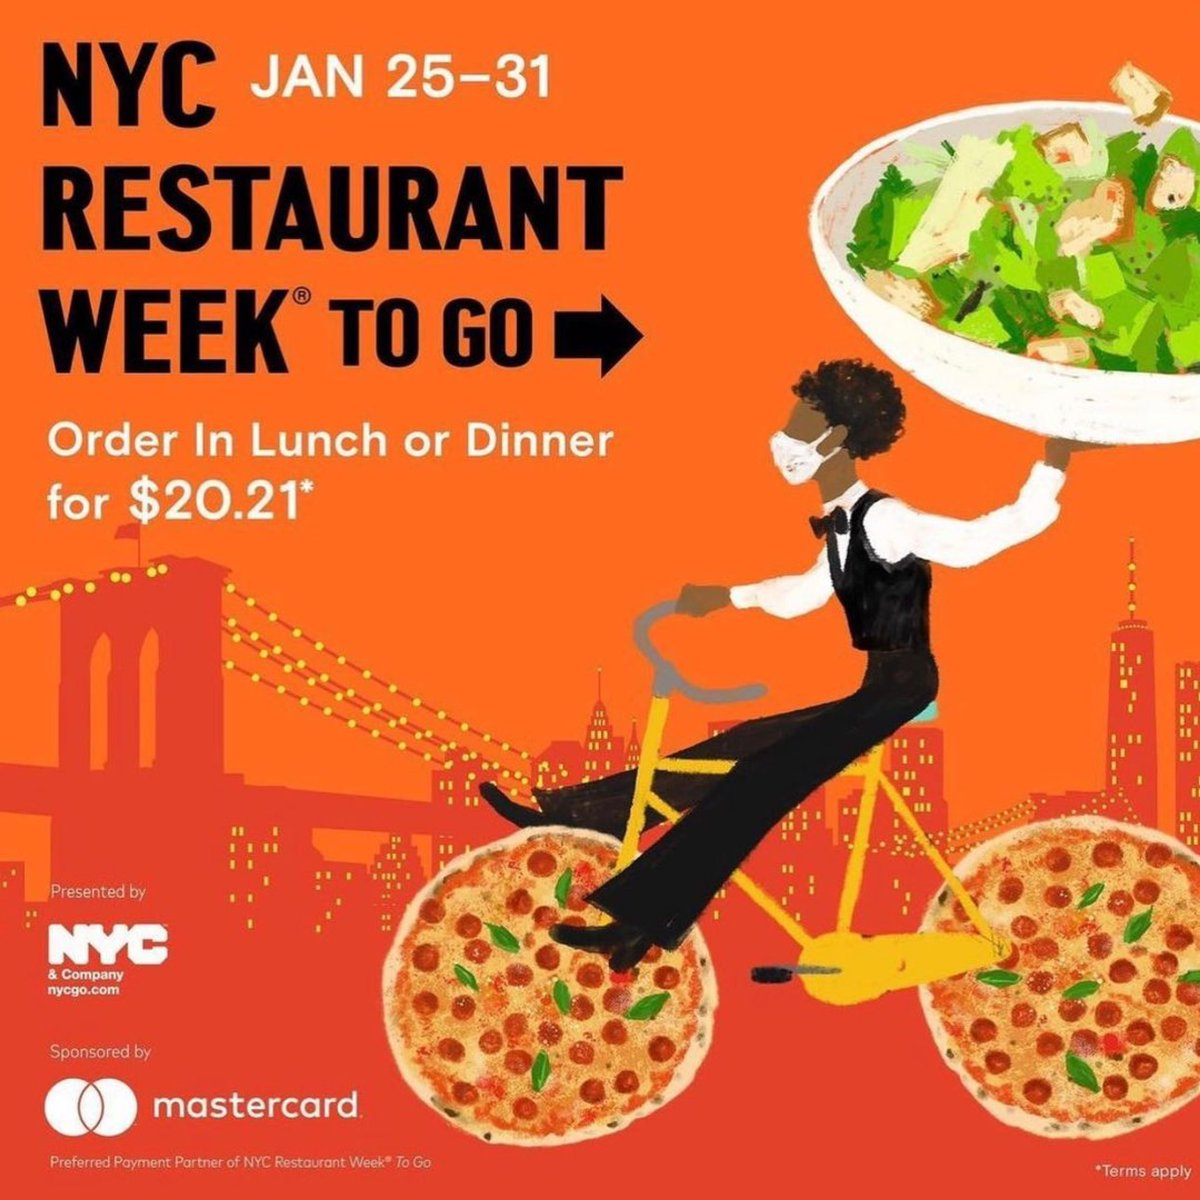 Spread Love ❤️ It's The Uptown Way  #Repost #uptowngrandcentral | IG   💥 More uptown eateries than ever are participating in this year's NYC Restaurant Week. Reimagined by NYC & Co. @nycgo as NYC Restaurant Week TO GO, the spotlight's on takeout and delivery to enjoy at home.